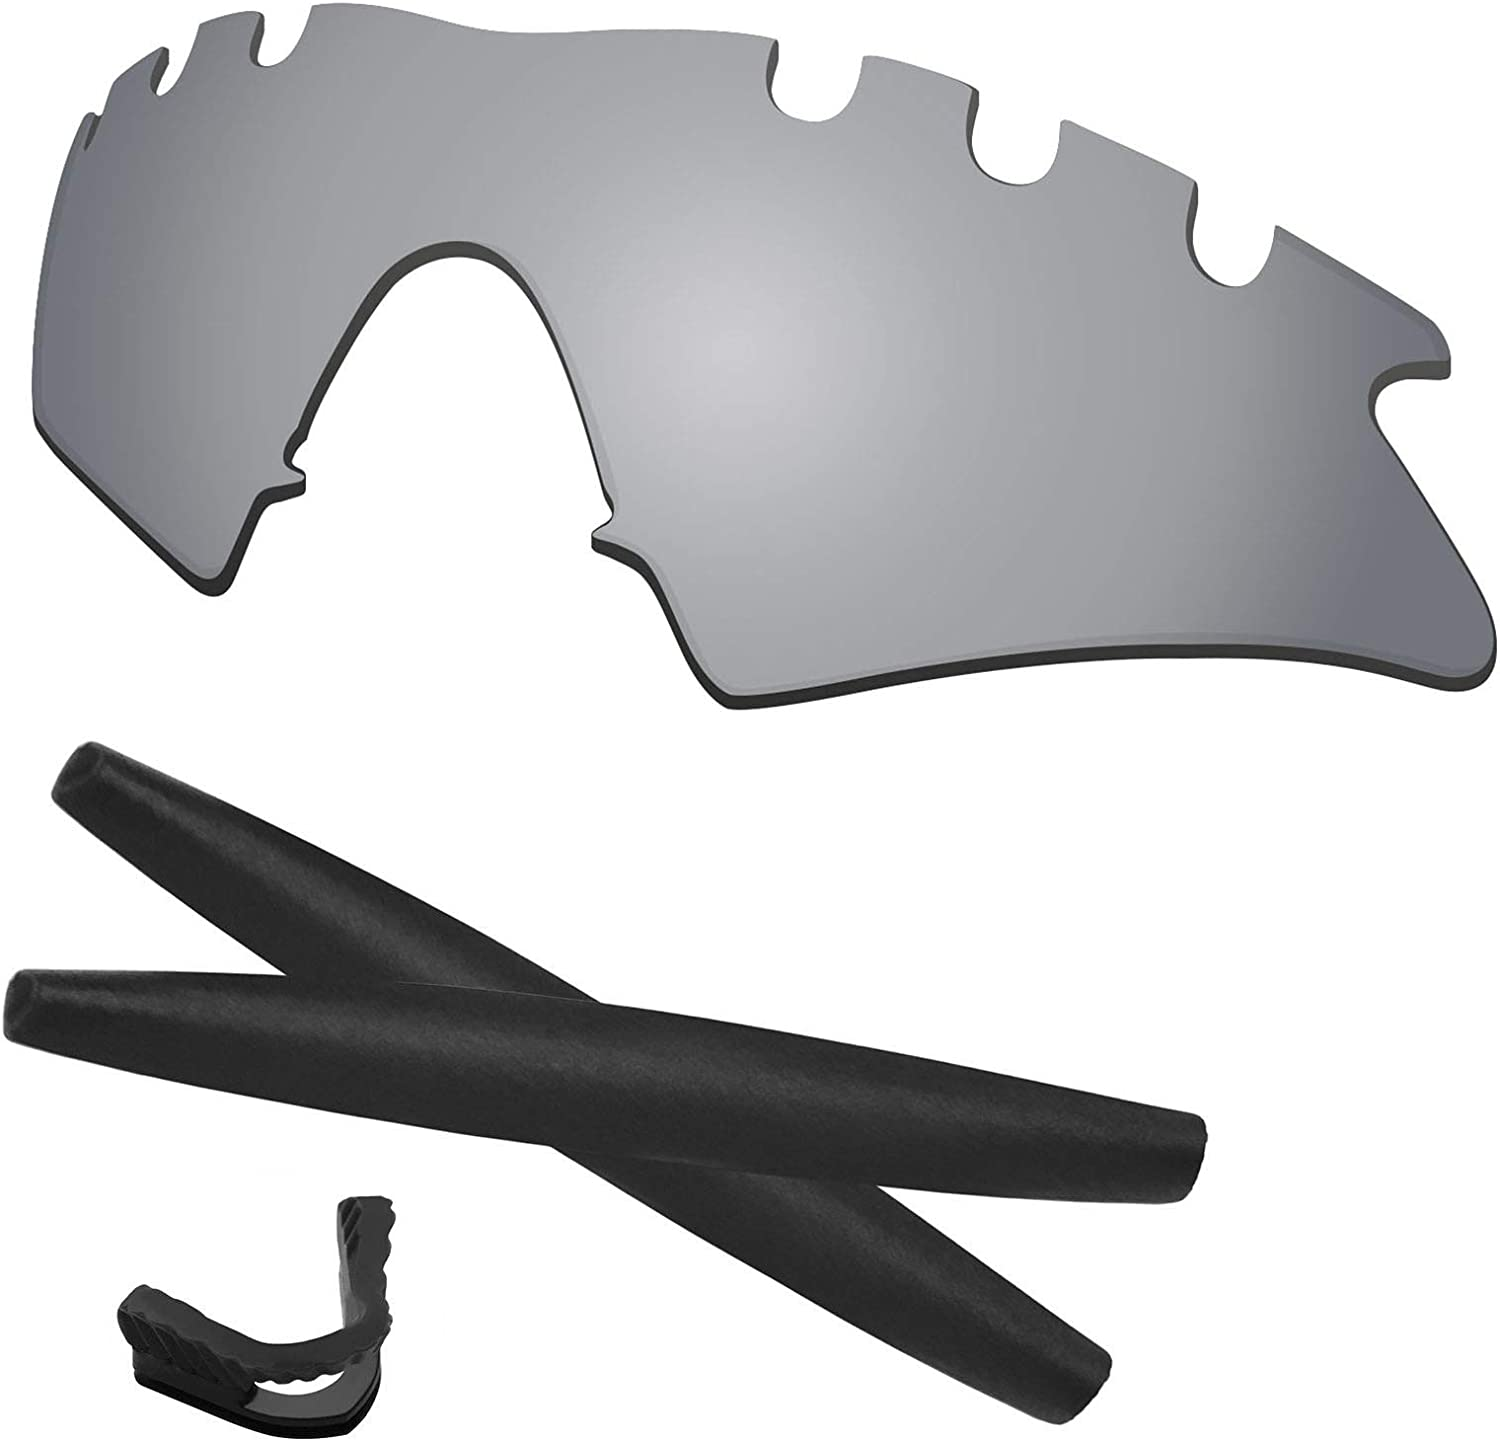 Predrox Courier shipping free shipping M Frame Max 80% OFF Sweep Vented Rubber fo Lenses Kits Replacement